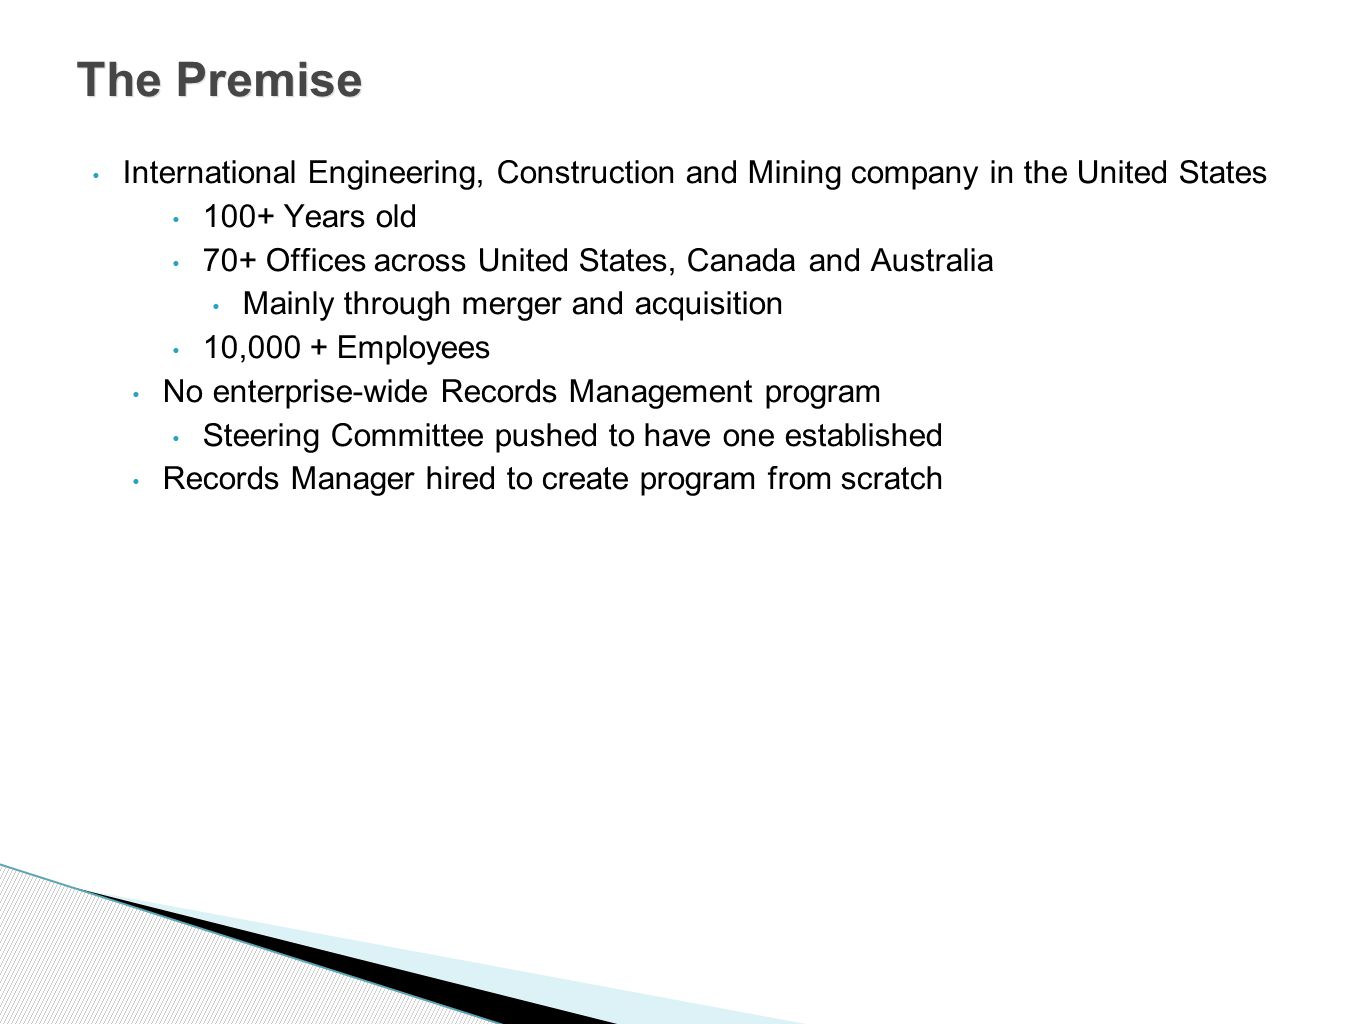 International Engineering, Construction and Mining company in the United States 100+ Years old 70+ Offices across United States, Canada and Australia Mainly through merger and acquisition 10,000 + Employees No enterprise-wide Records Management program Steering Committee pushed to have one established Records Manager hired to create program from scratch The Premise